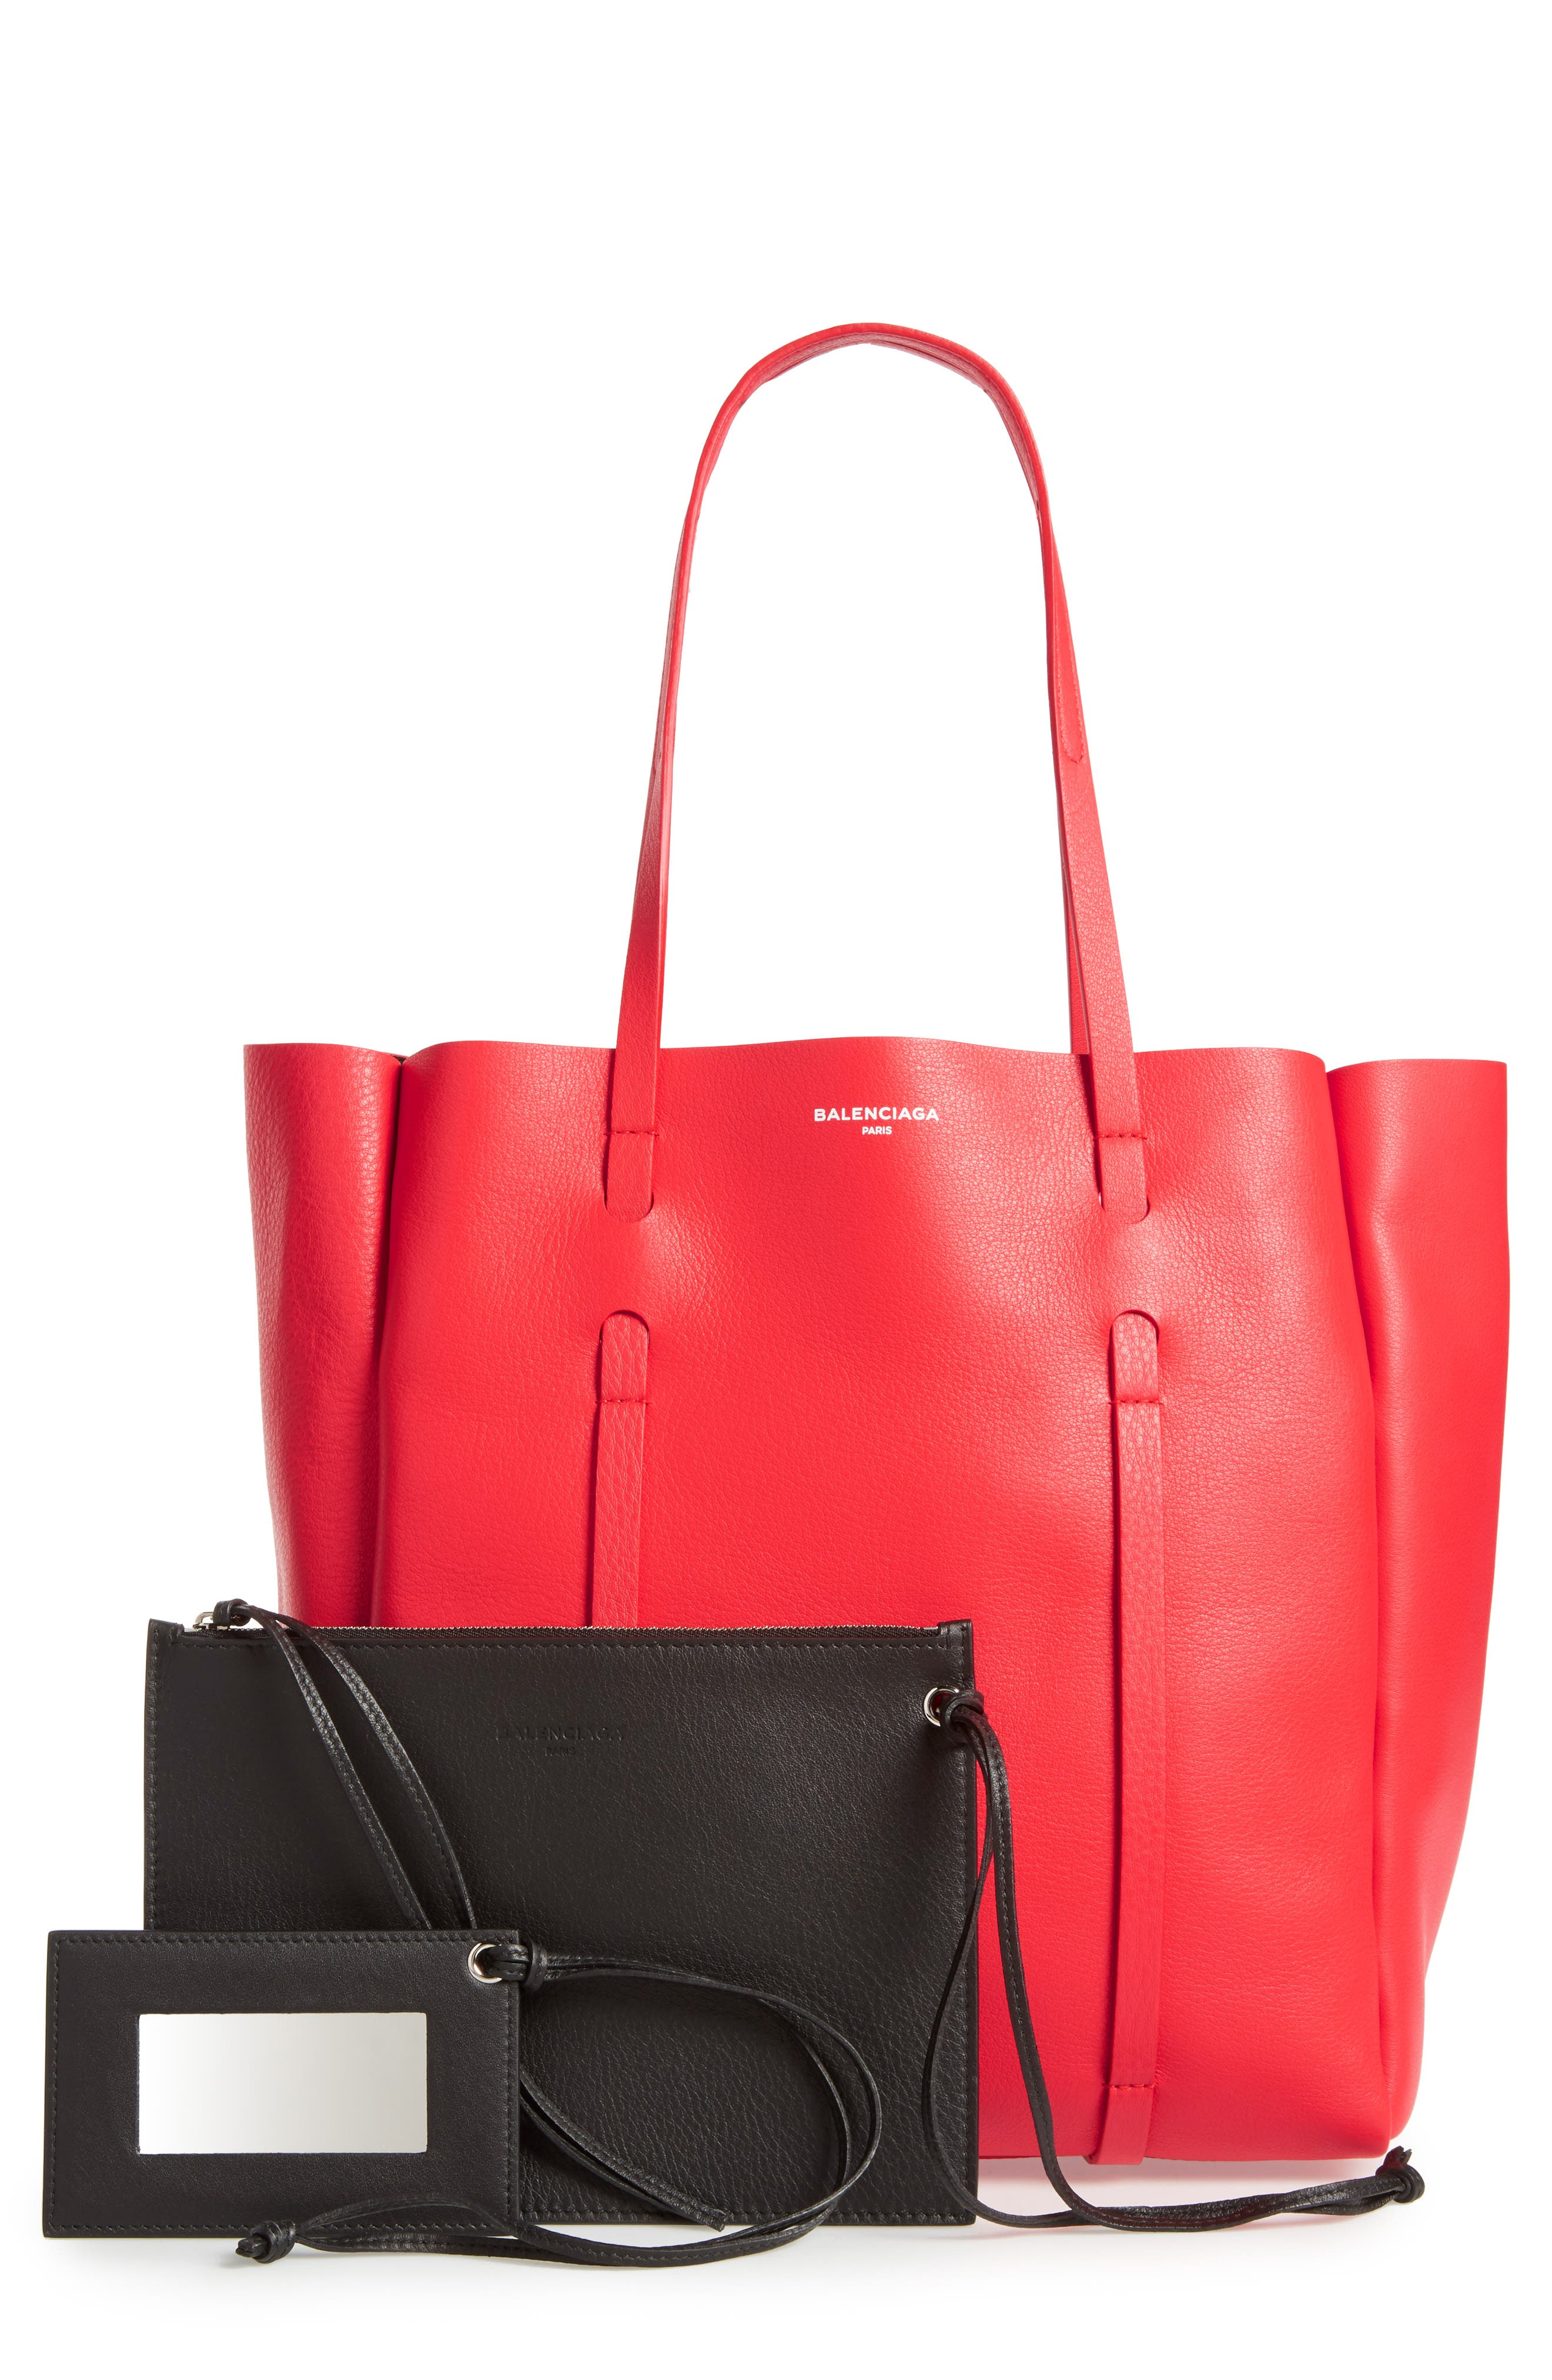 Balenciaga Small Everyday Calfskin Tote